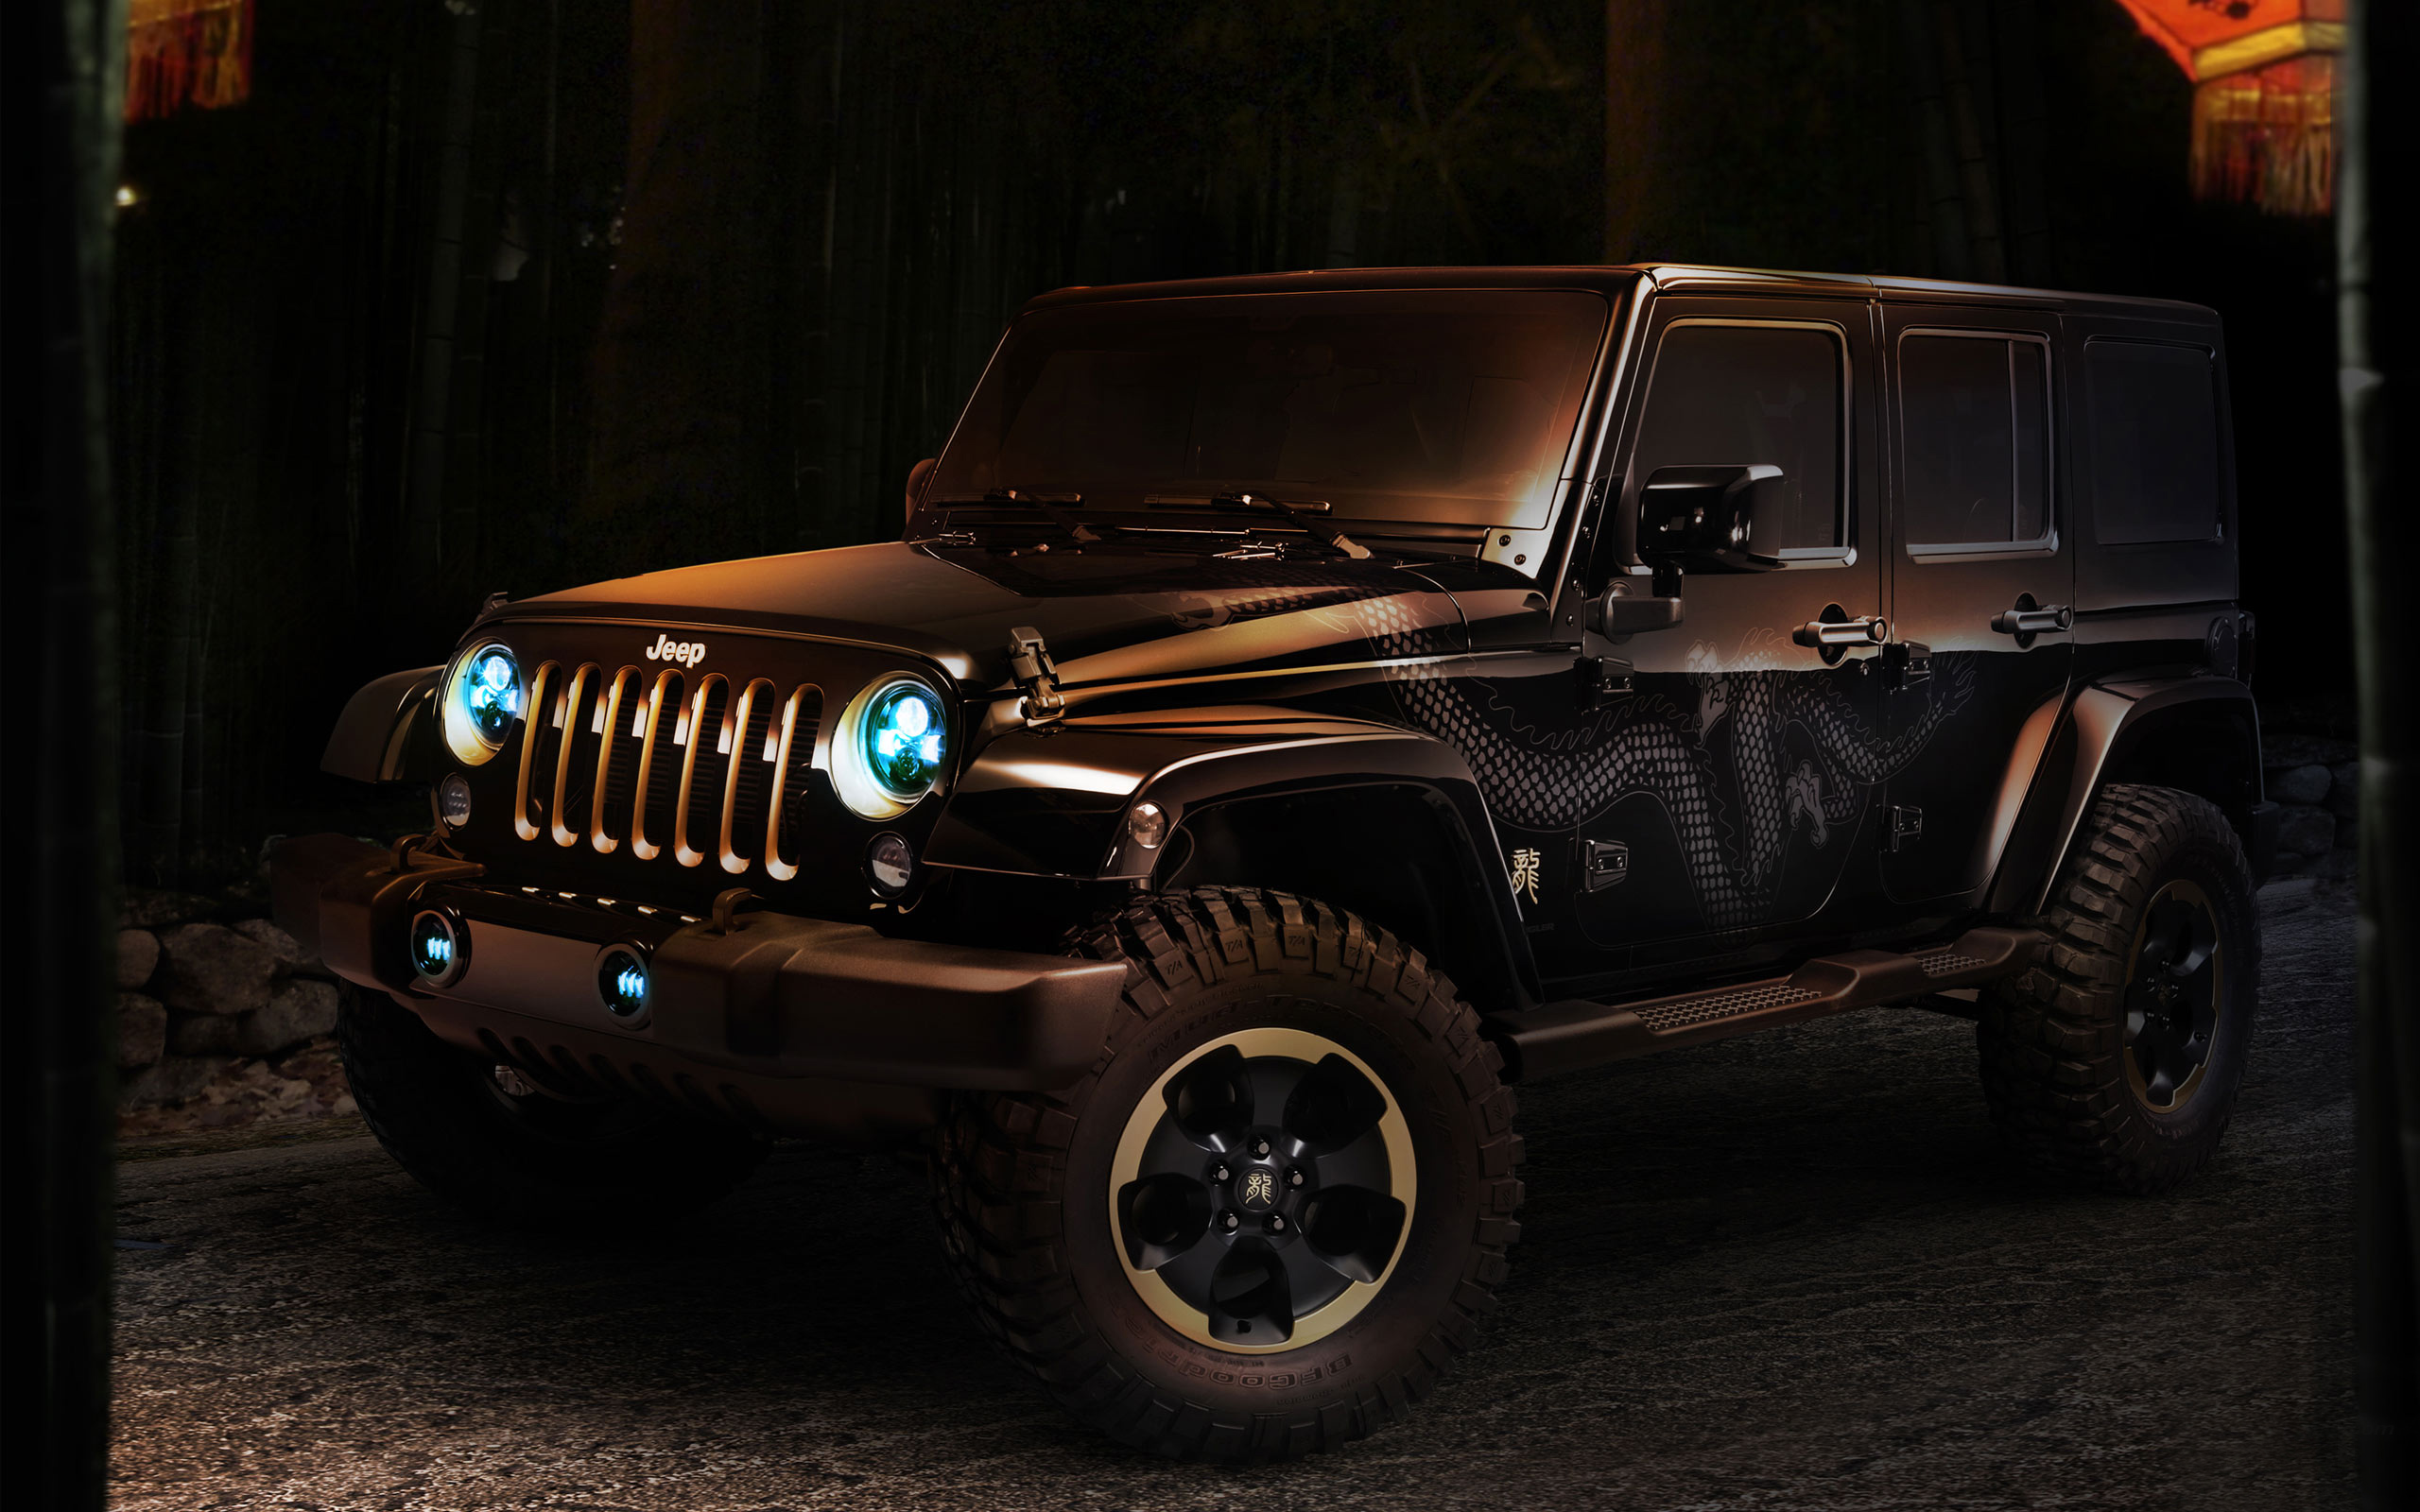 Jeep Car Images Hd: Jeep Wrangler Dragon Concept Wallpaper